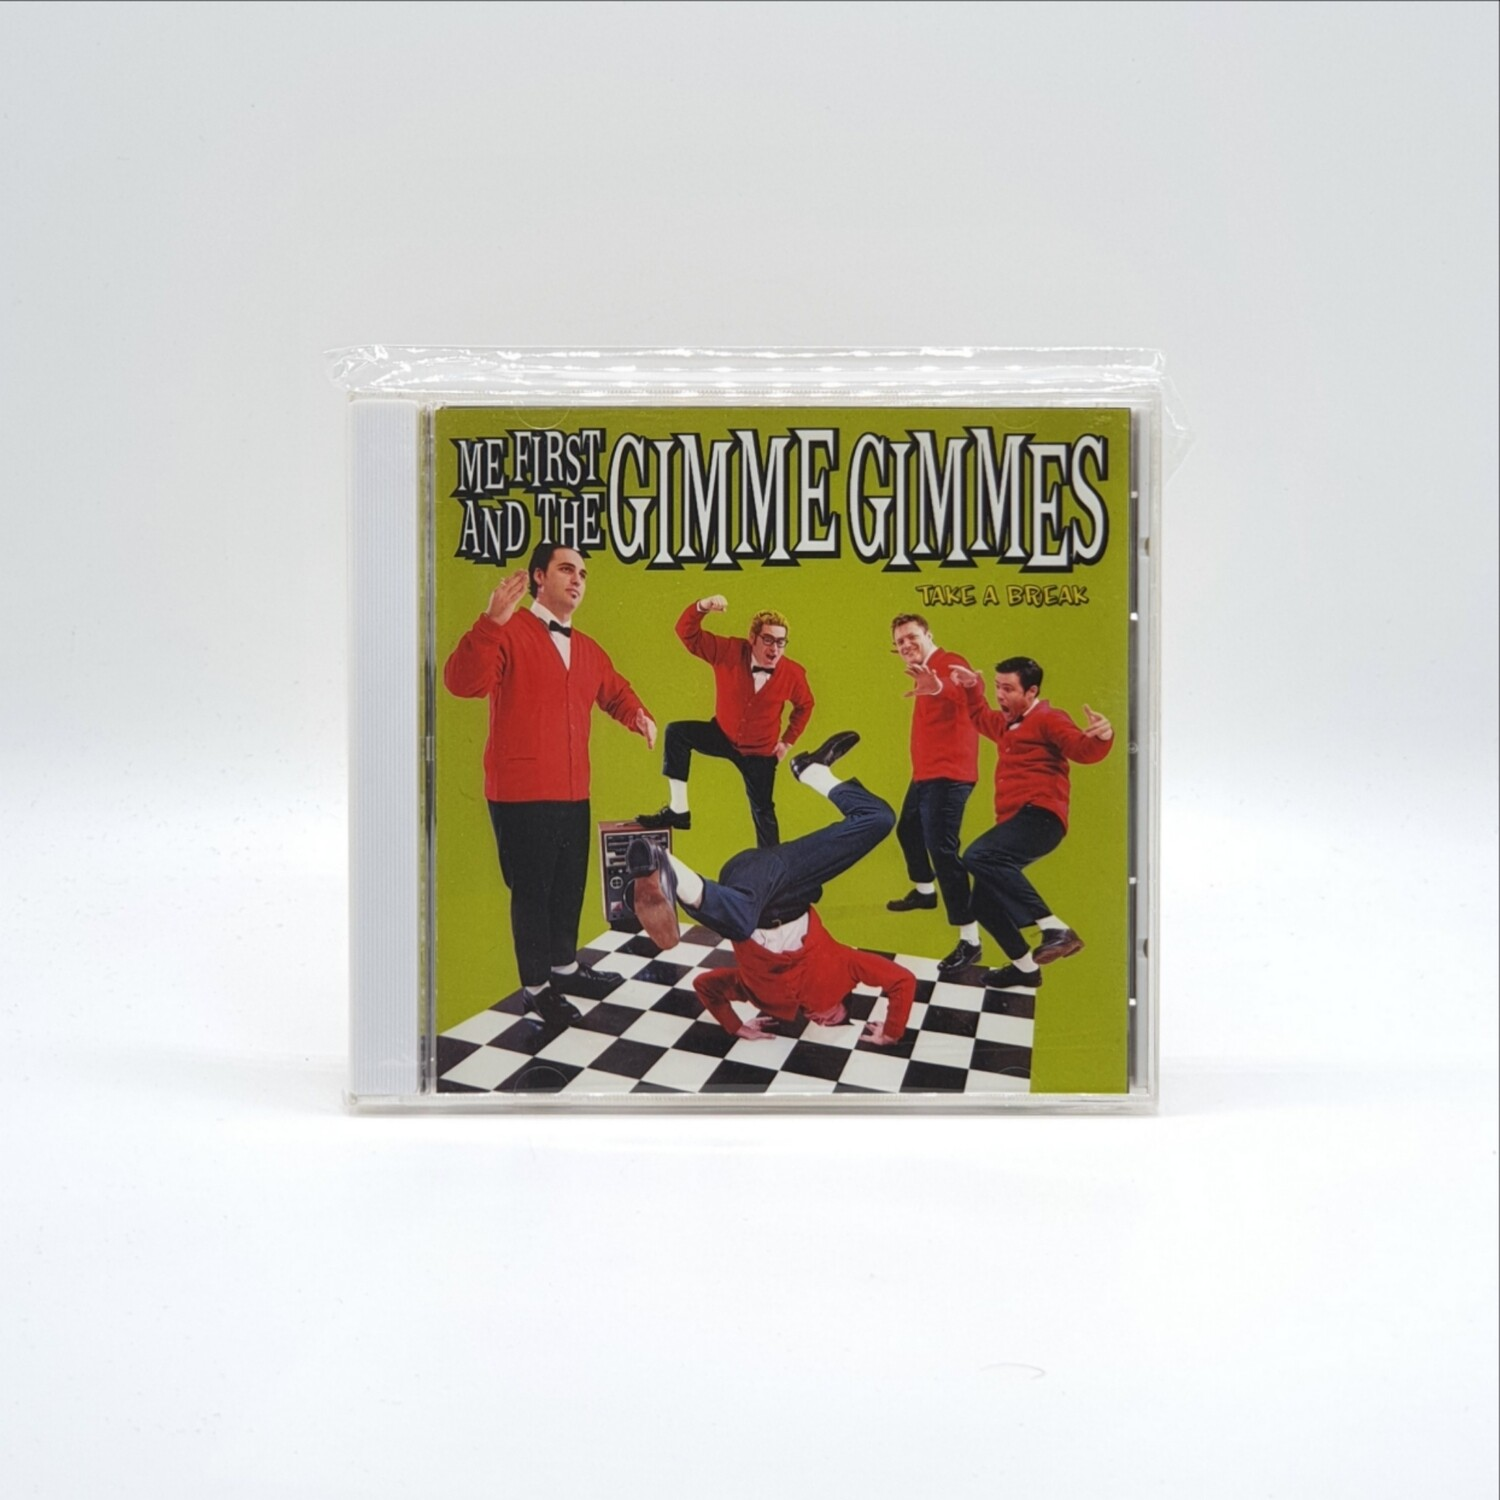 [USED] ME FIRST AND THE GIMME GIMMES -TAKE A BREAK- CD